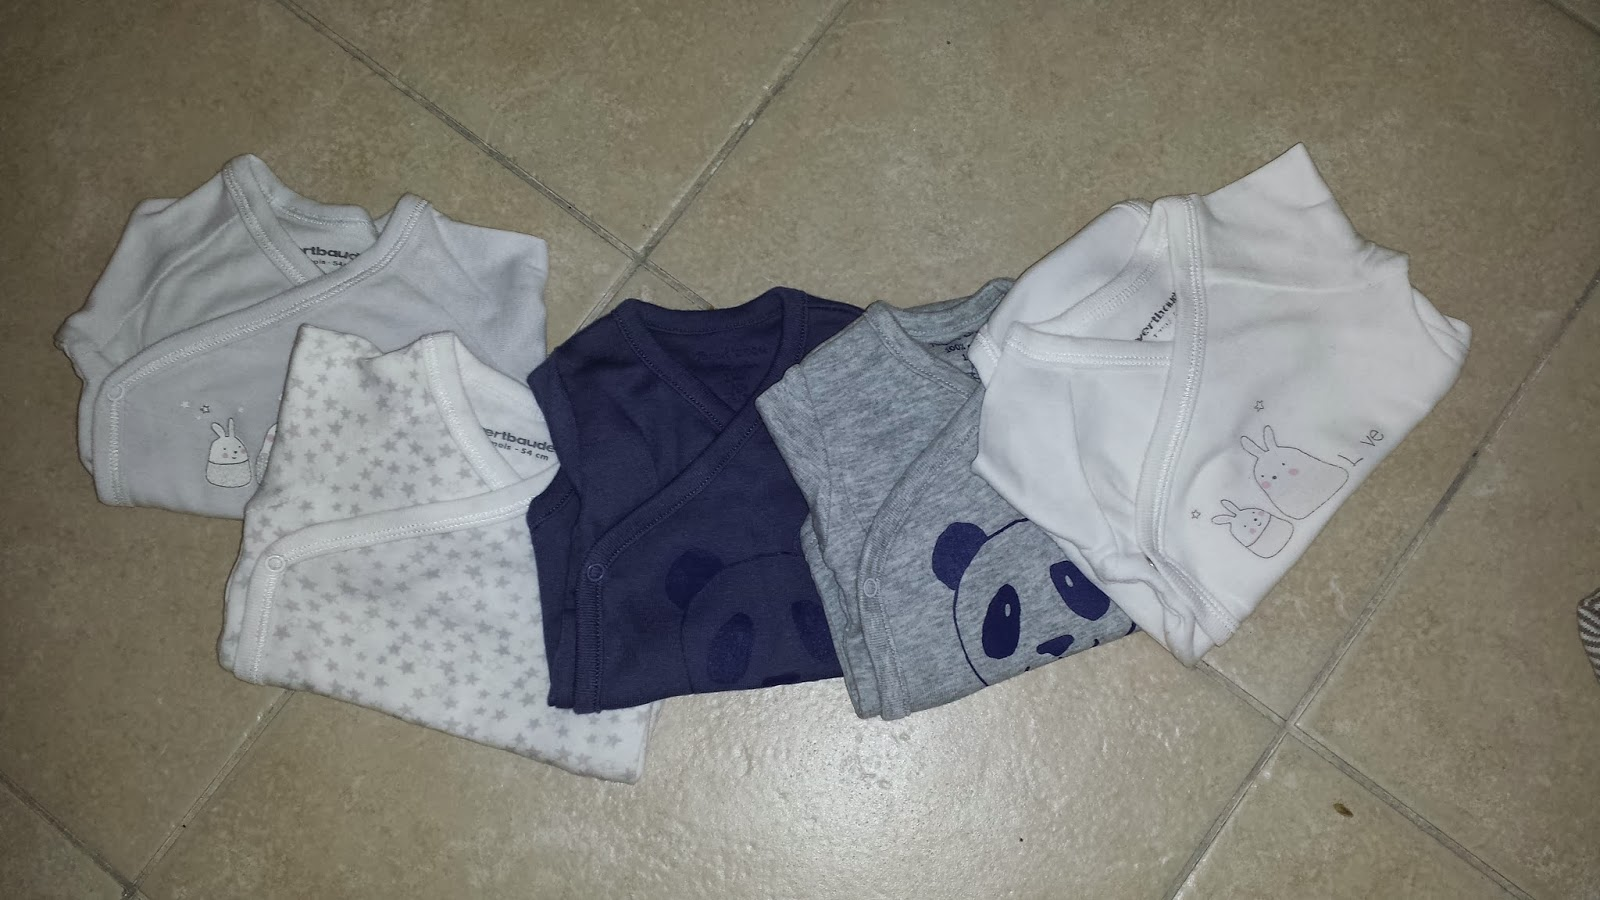 la cosmetic junkie la valise maternit partie 2 le s jour de b b. Black Bedroom Furniture Sets. Home Design Ideas